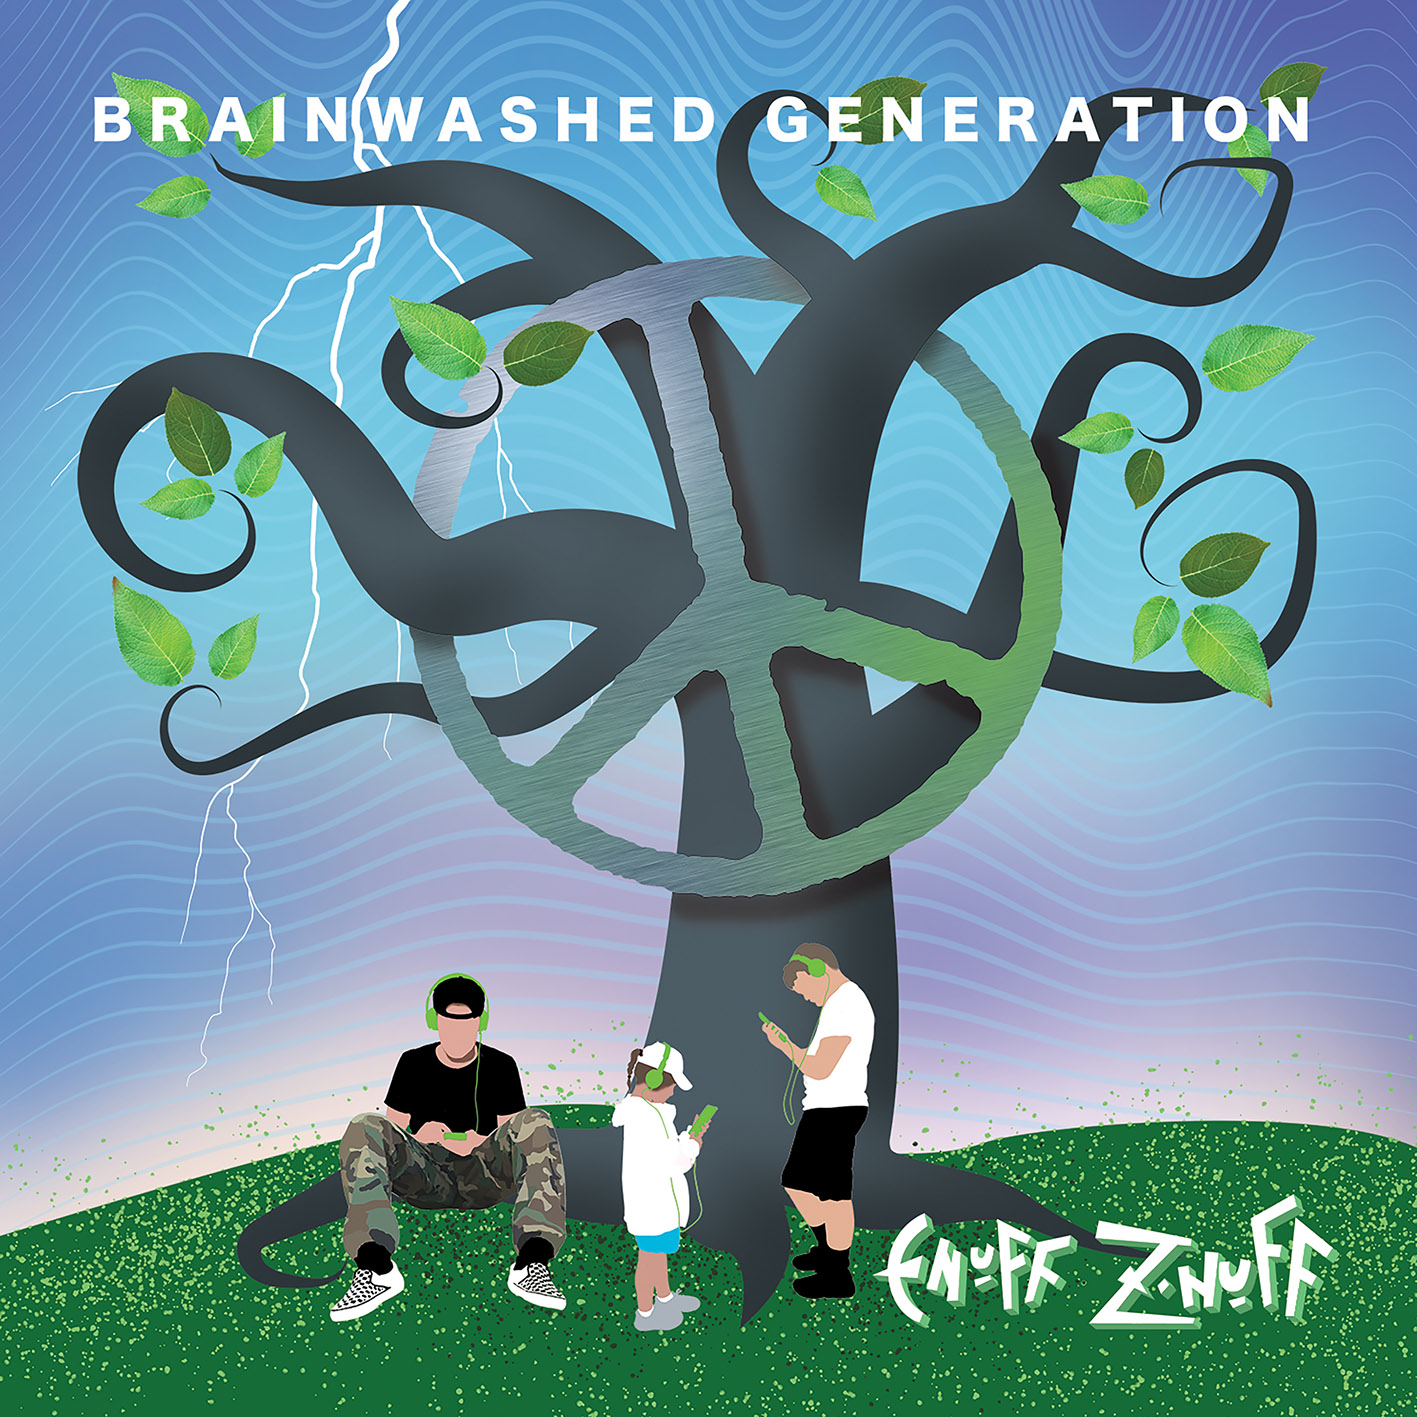 album_cover_ENUFF%20Z'NUFF%20brainwashed